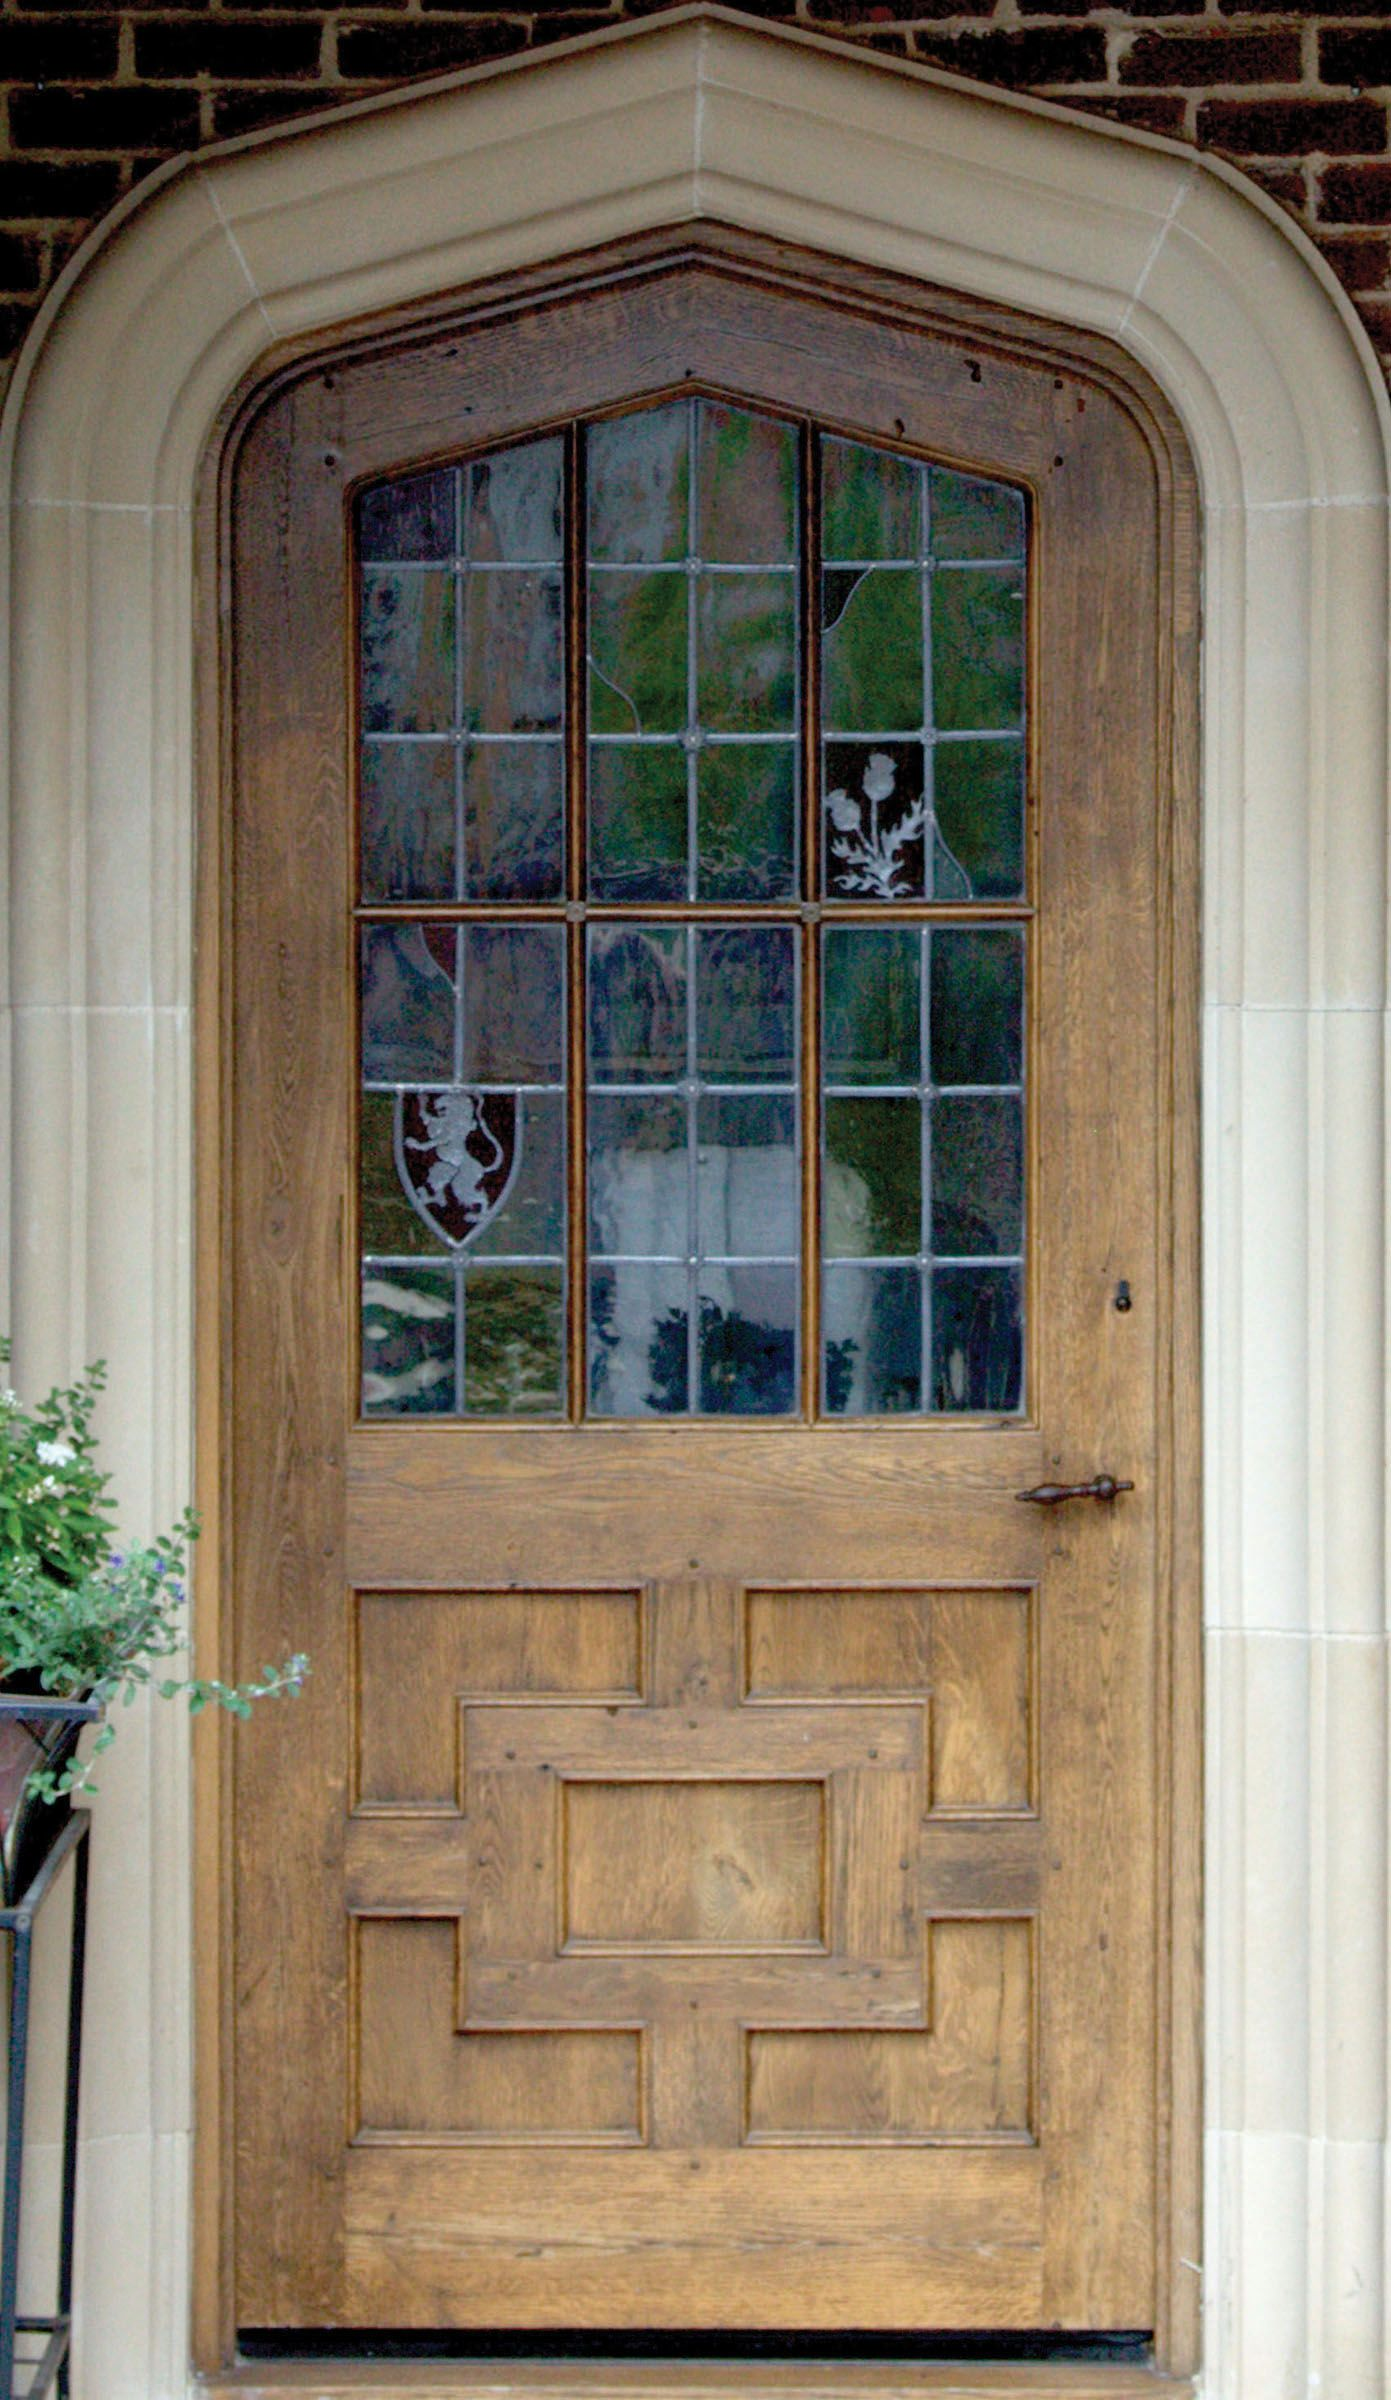 Architecture design English door with stained glass